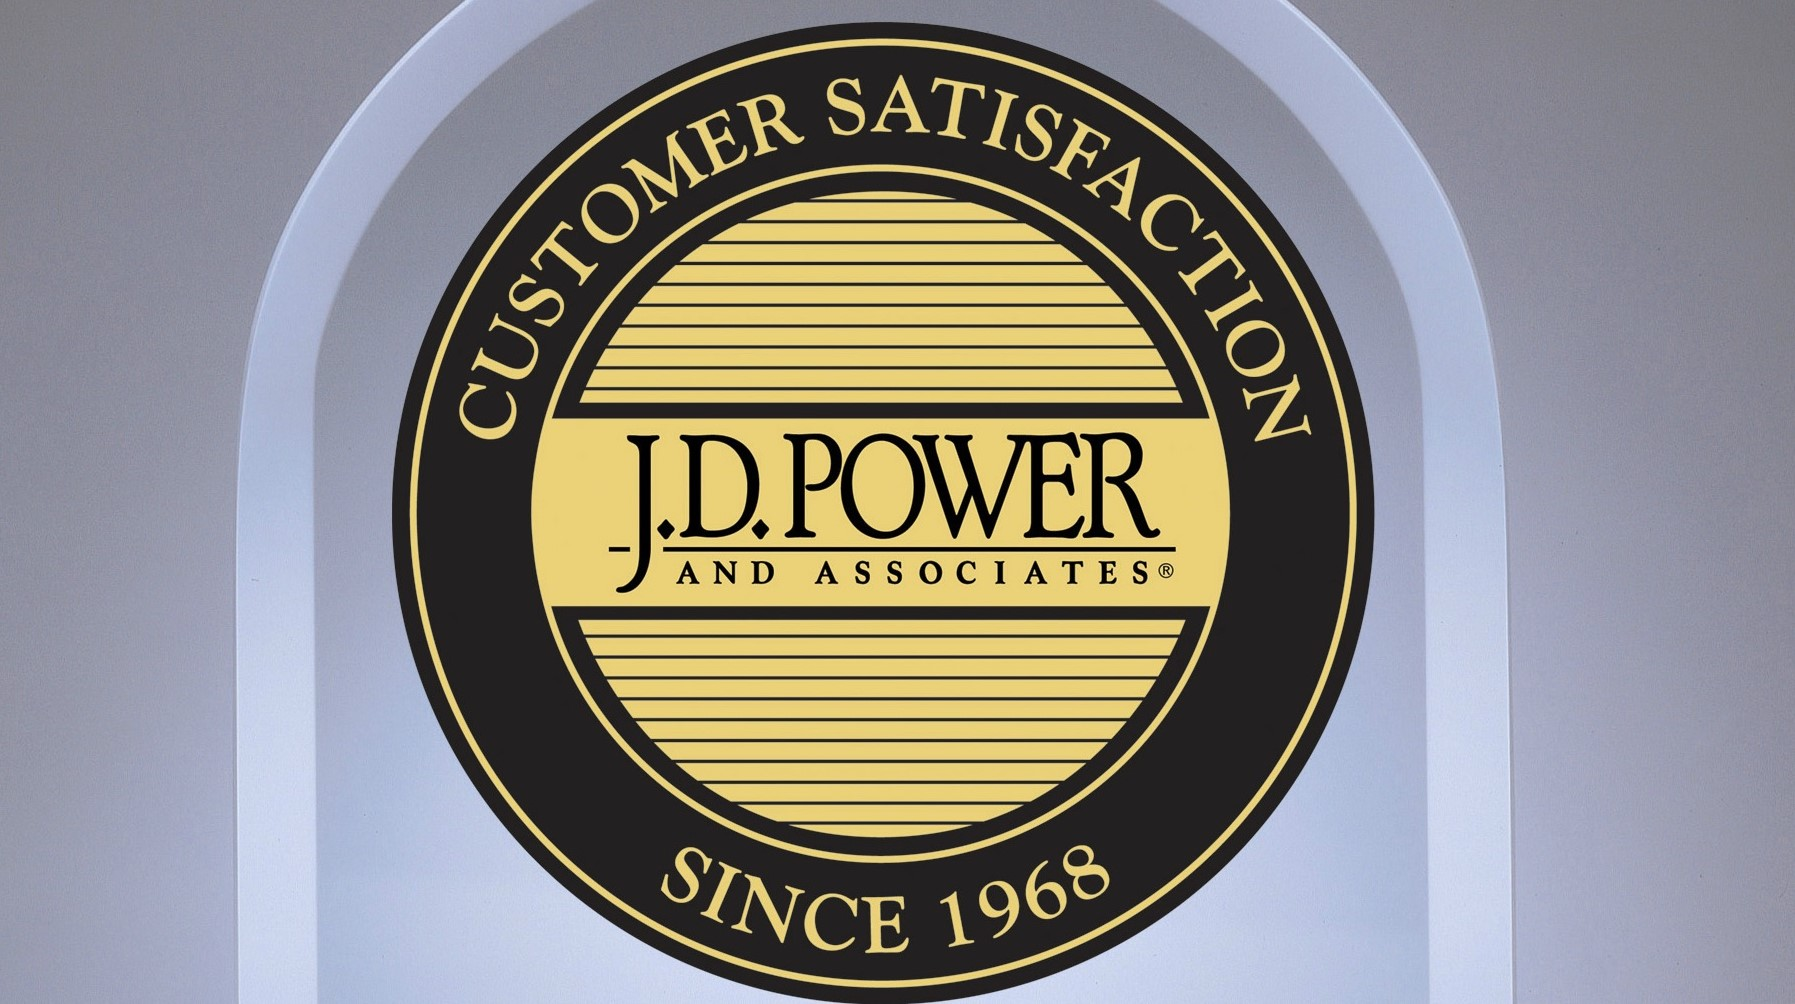 jd power